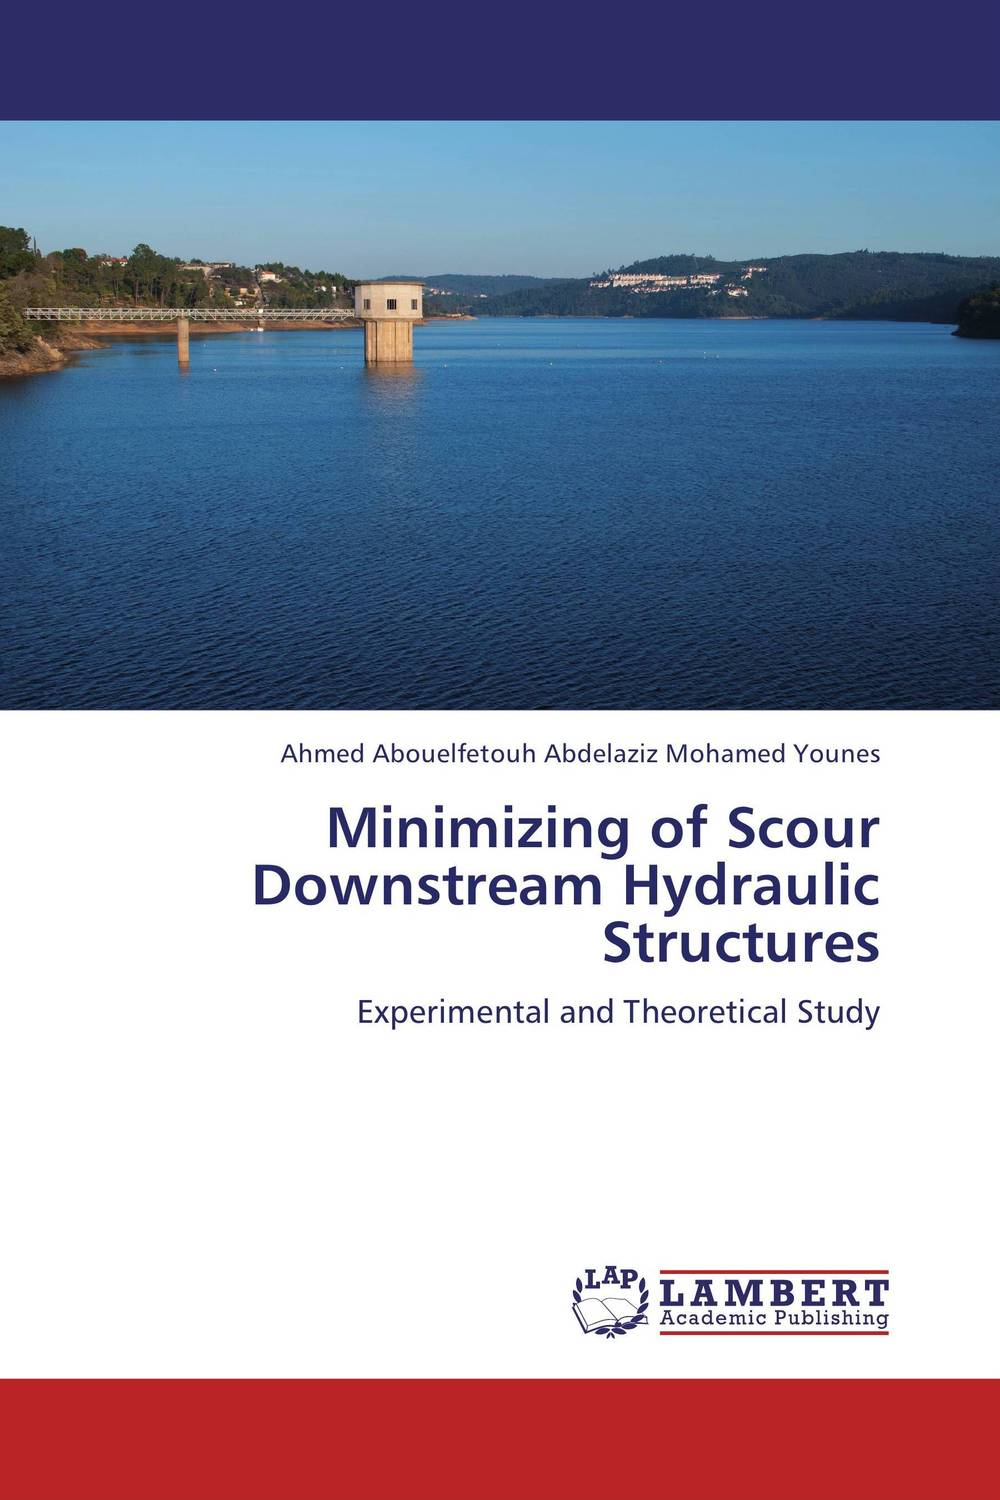 Minimizing of Scour Downstream Hydraulic Structures discharge measuring structures